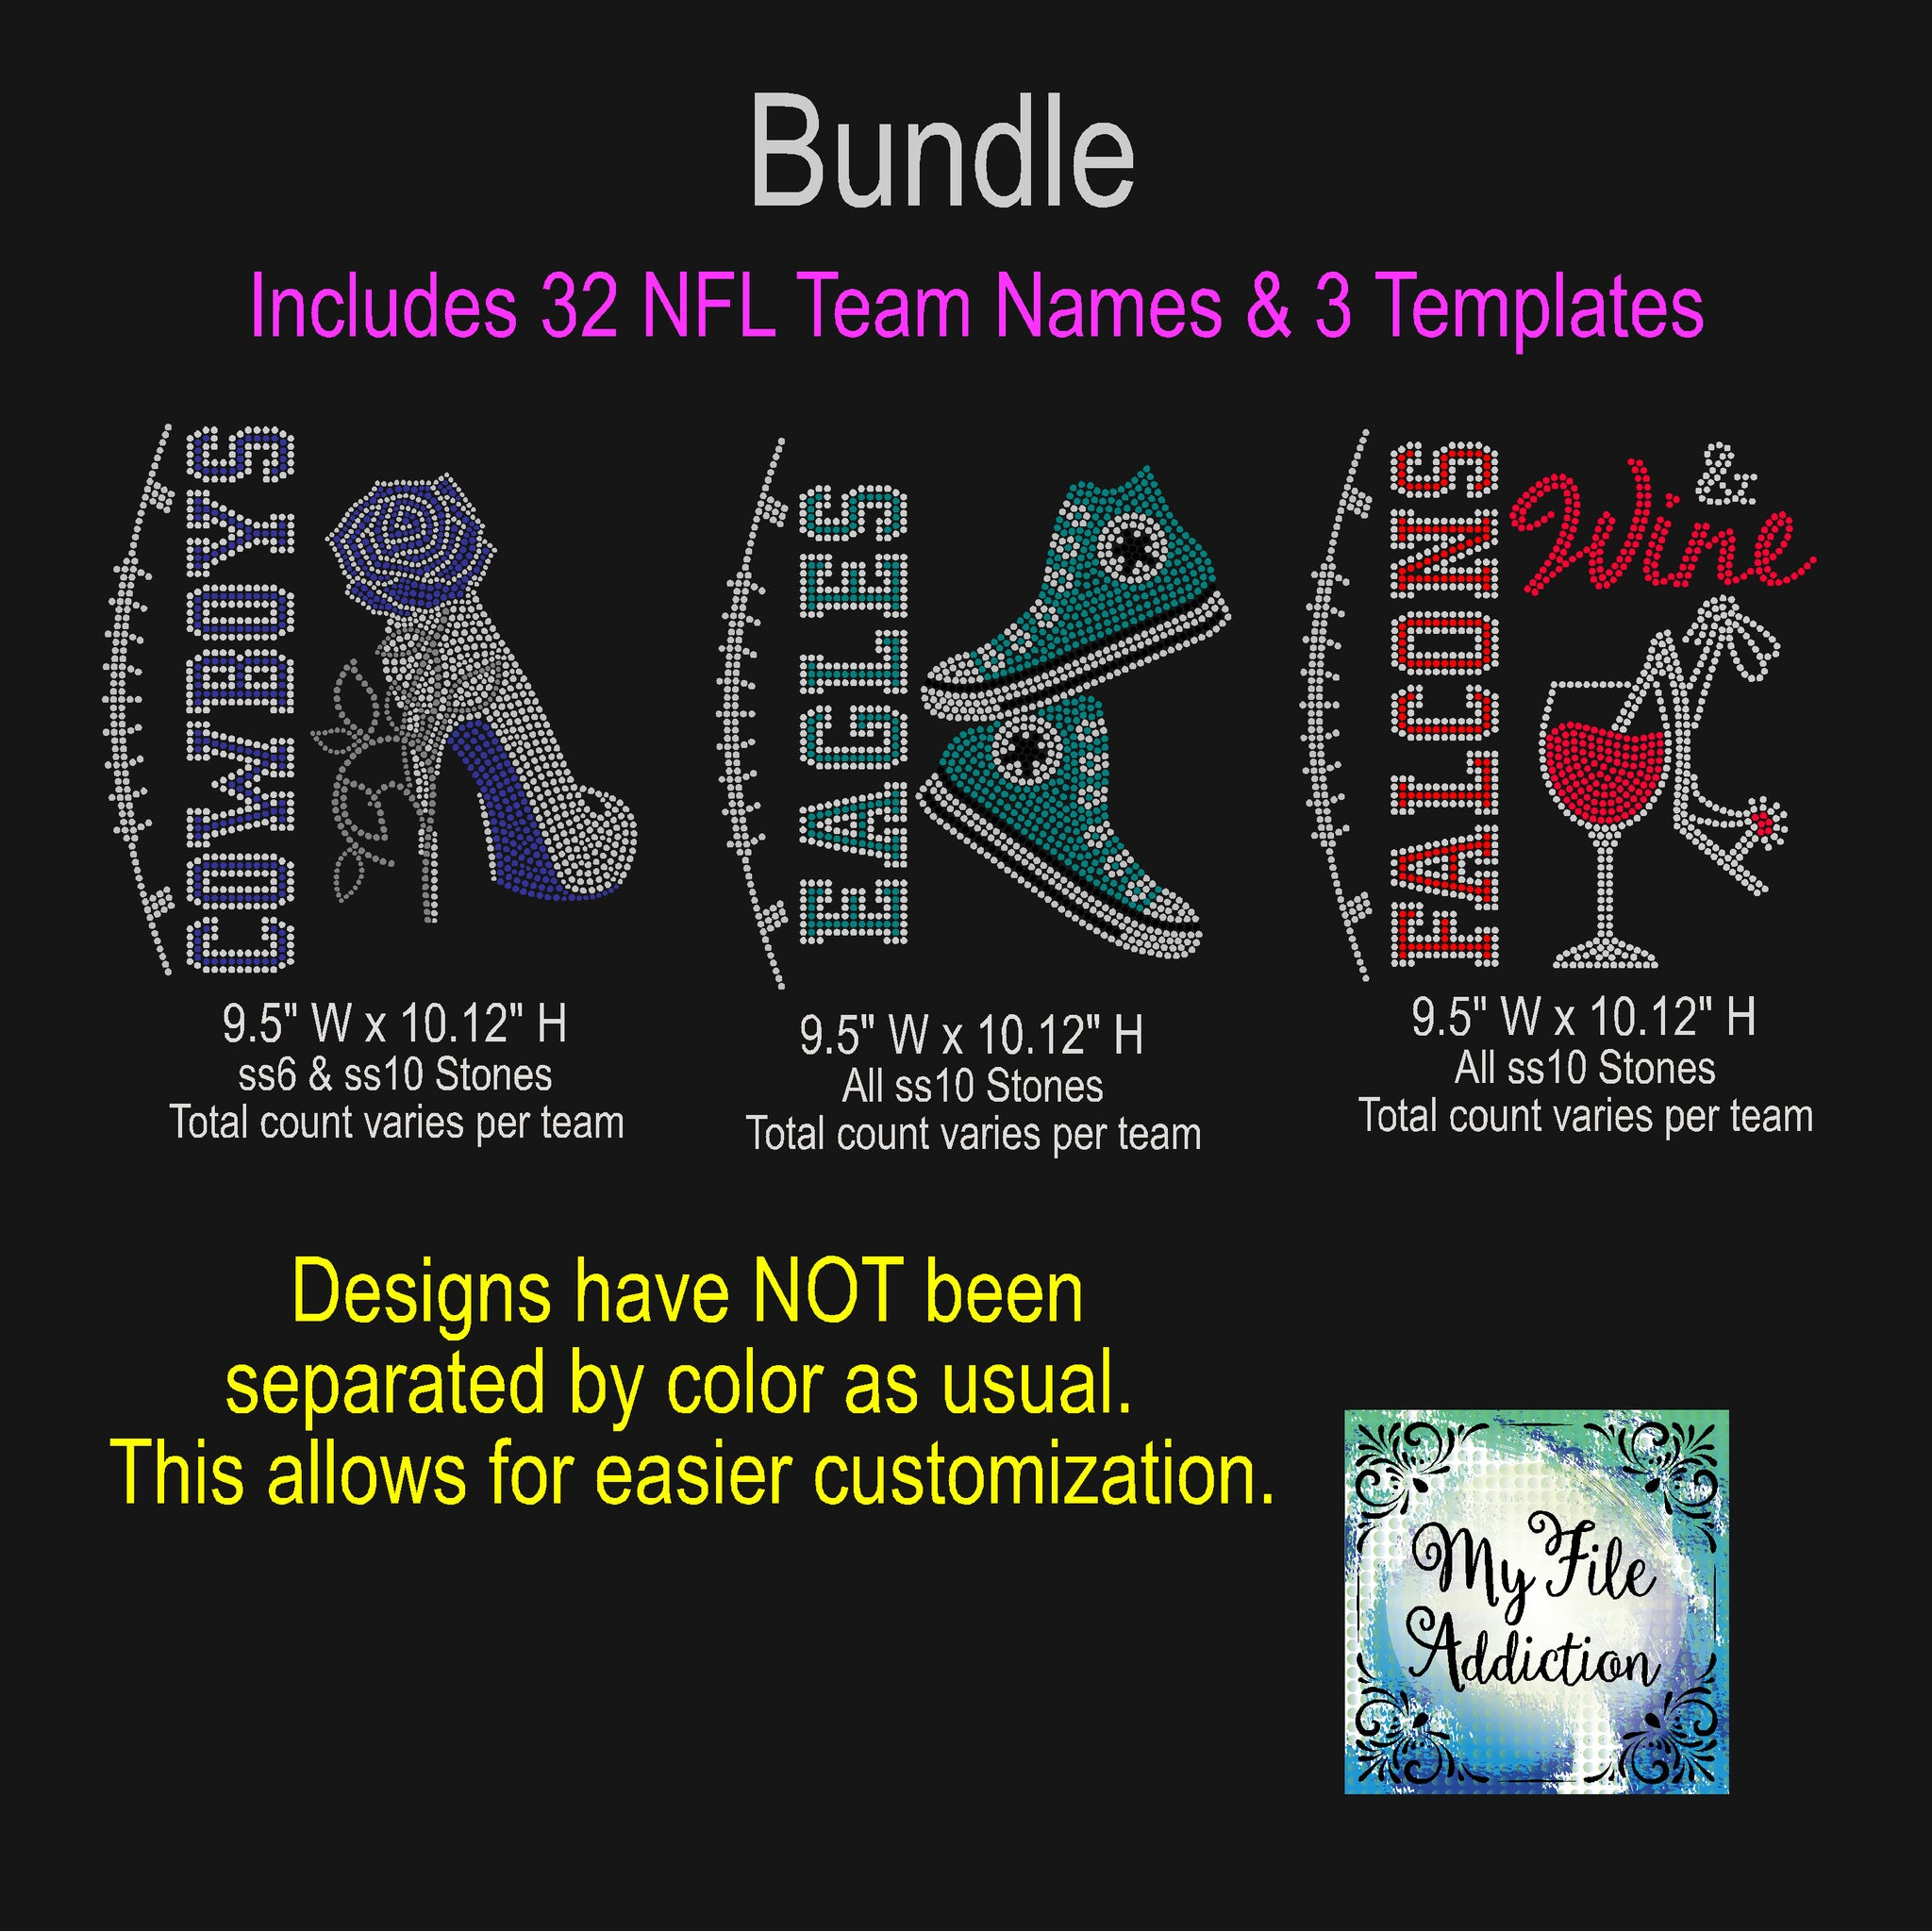 NFL Football Bundle 32 Team Names Plus 3 Rhinestone Designs, Rose Stiletto, High Tops & Wine with Shoe Rhinestone Digital Download File - My File Addiction